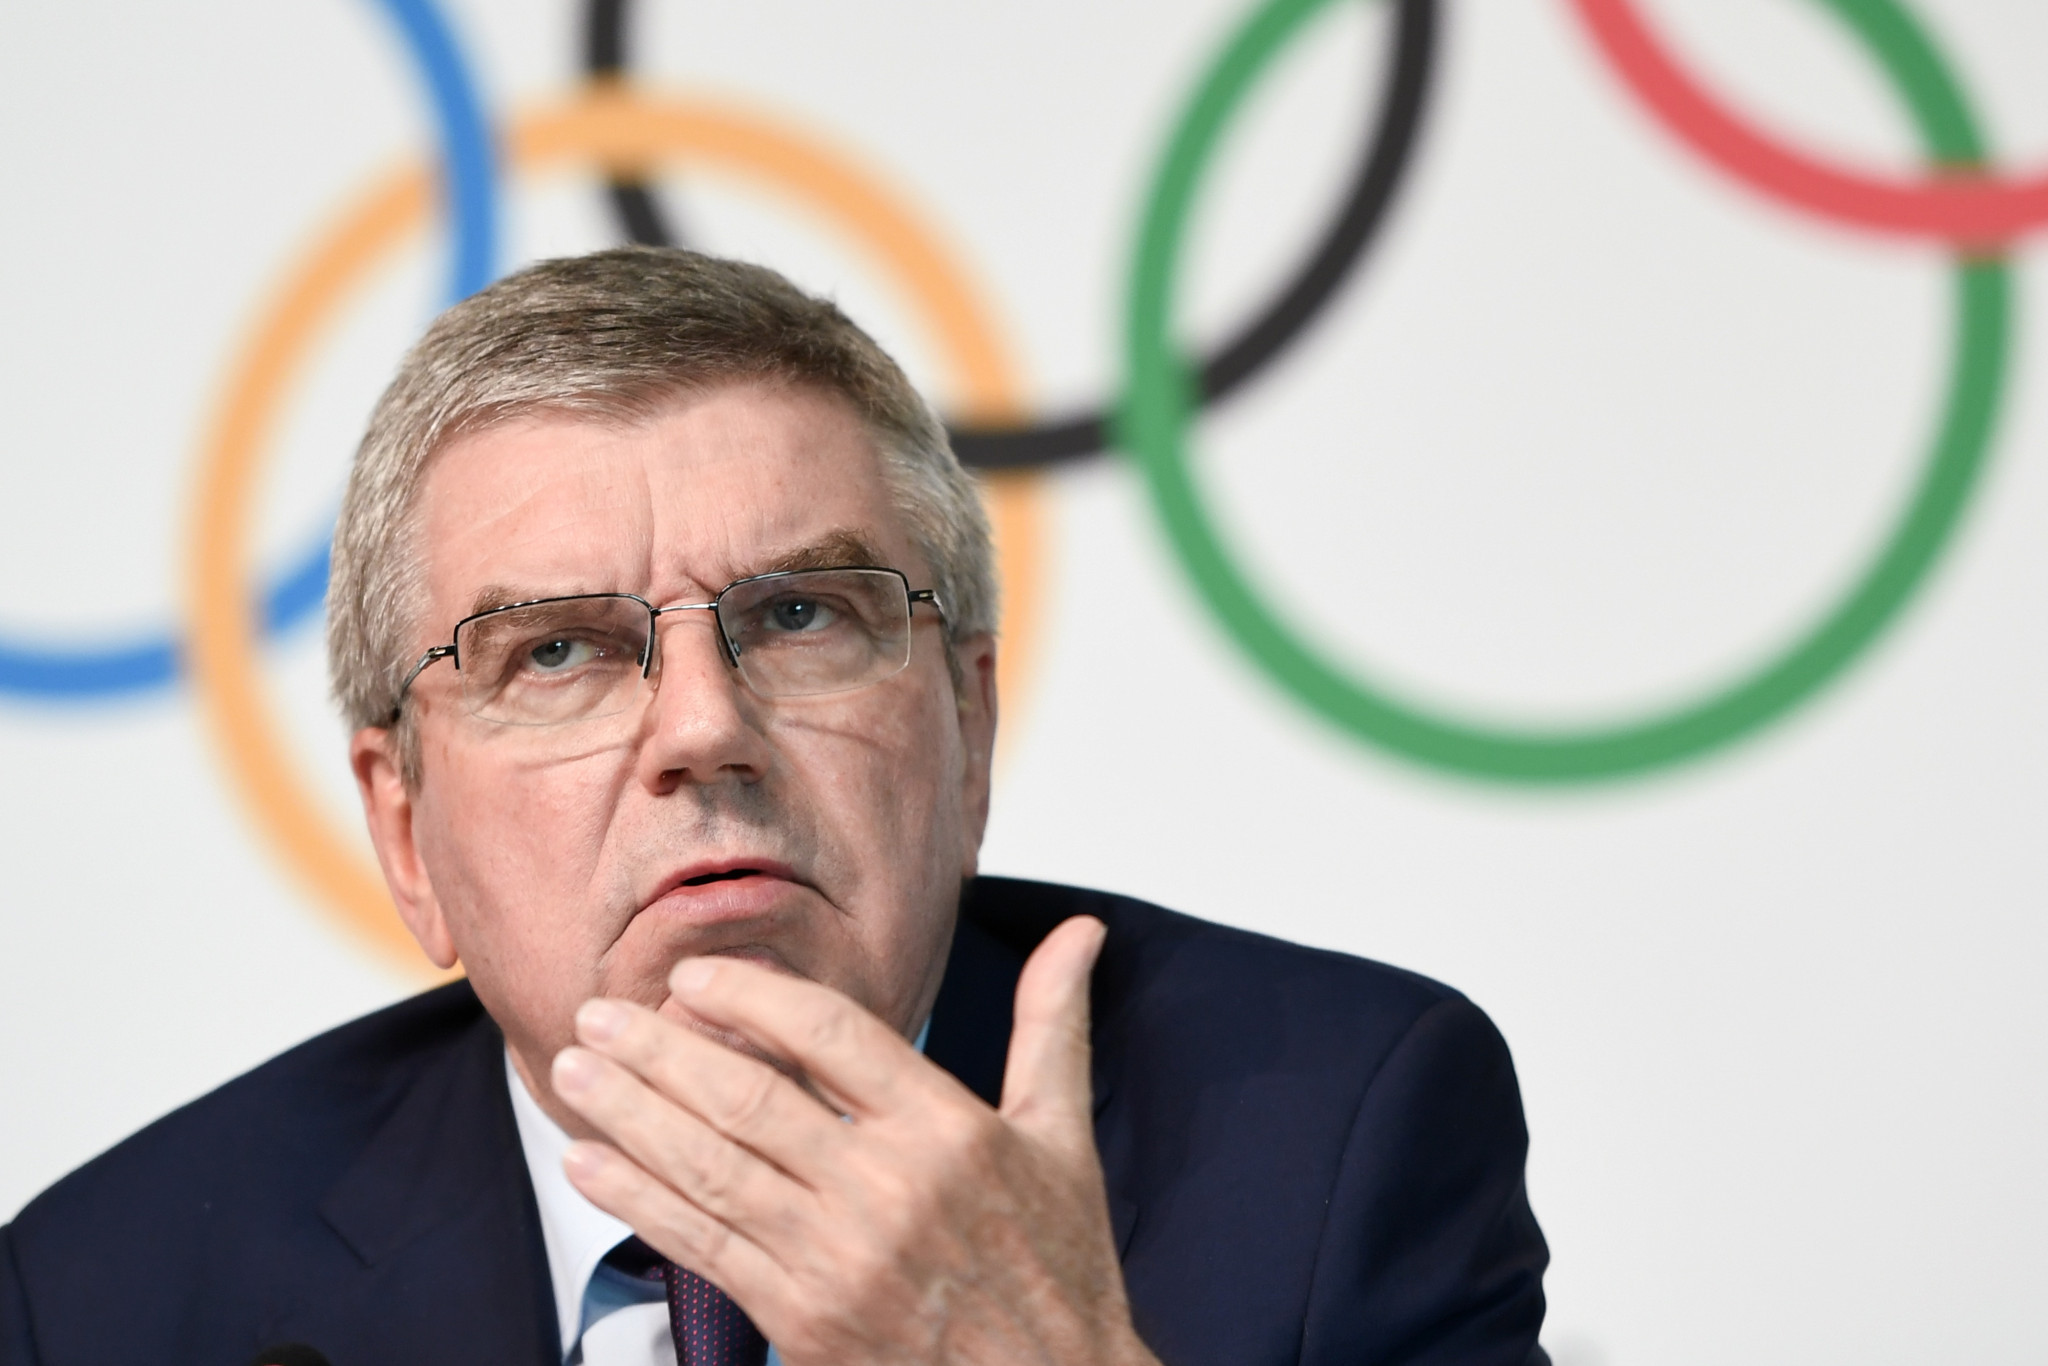 IOC President Thomas Bach suggested the organisation may look towards recommending a single host for the Games ©Getty Images